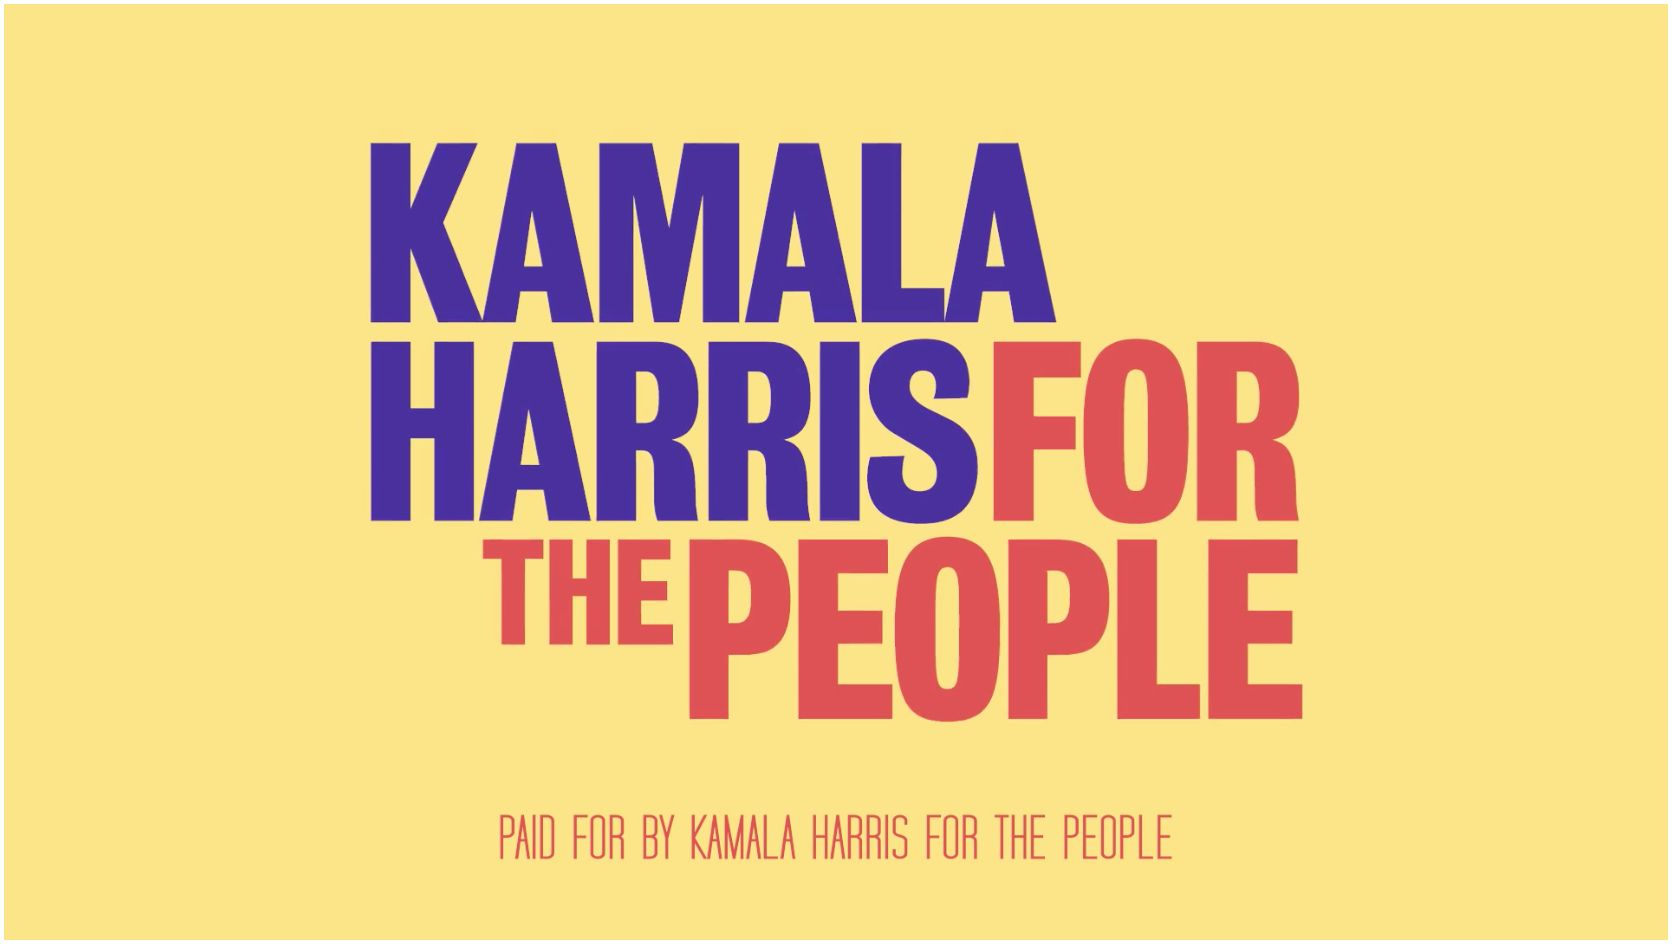 It's Official! Kamala Harris Announces She's Running For President